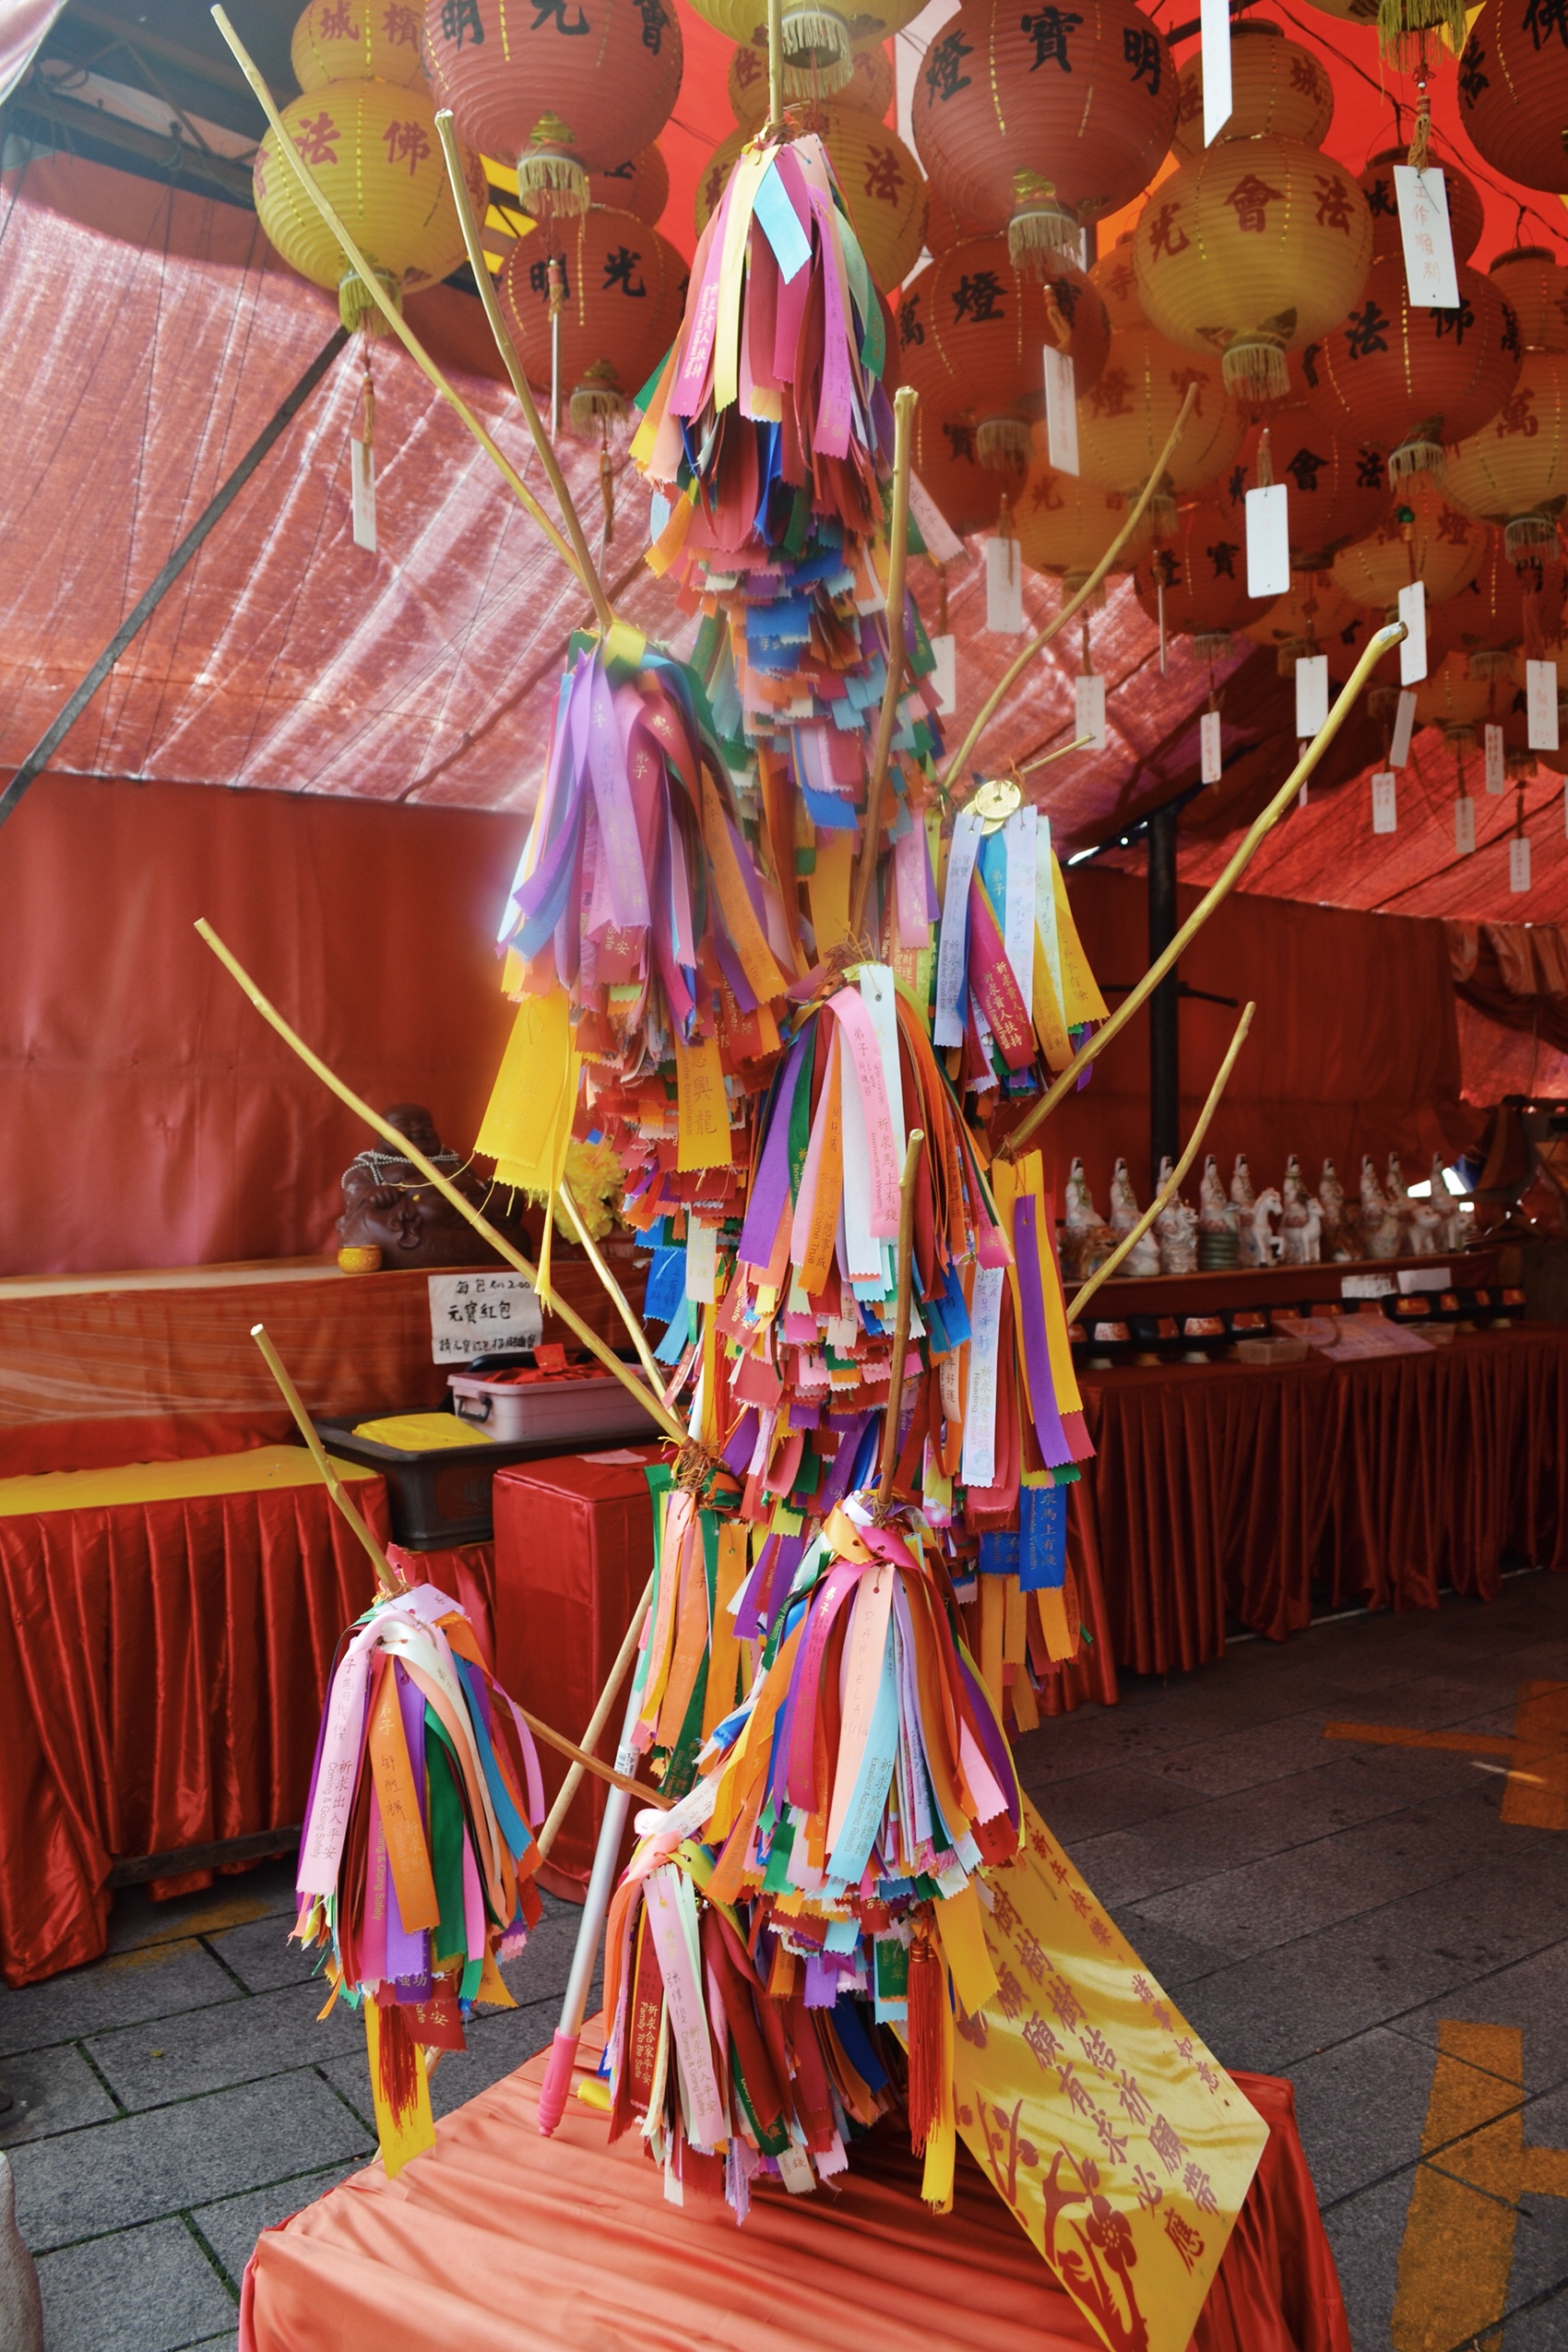 image of wishing tree in Kek Lok Si temple in Malayisa